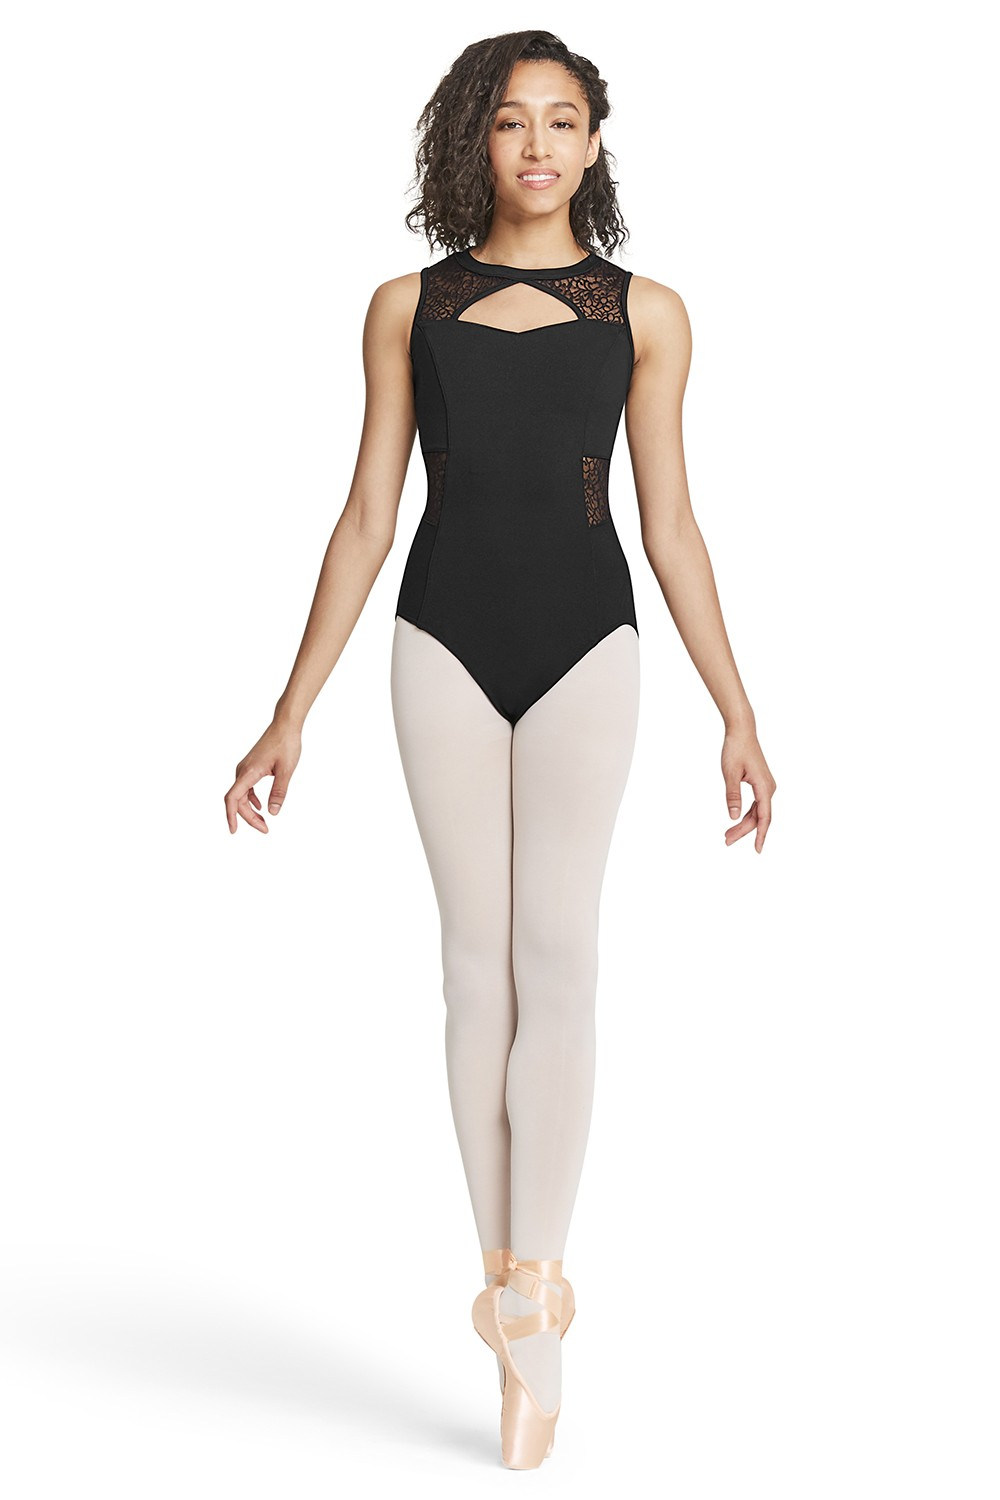 Zip Back Tank Leotard Women's Dance Leotards